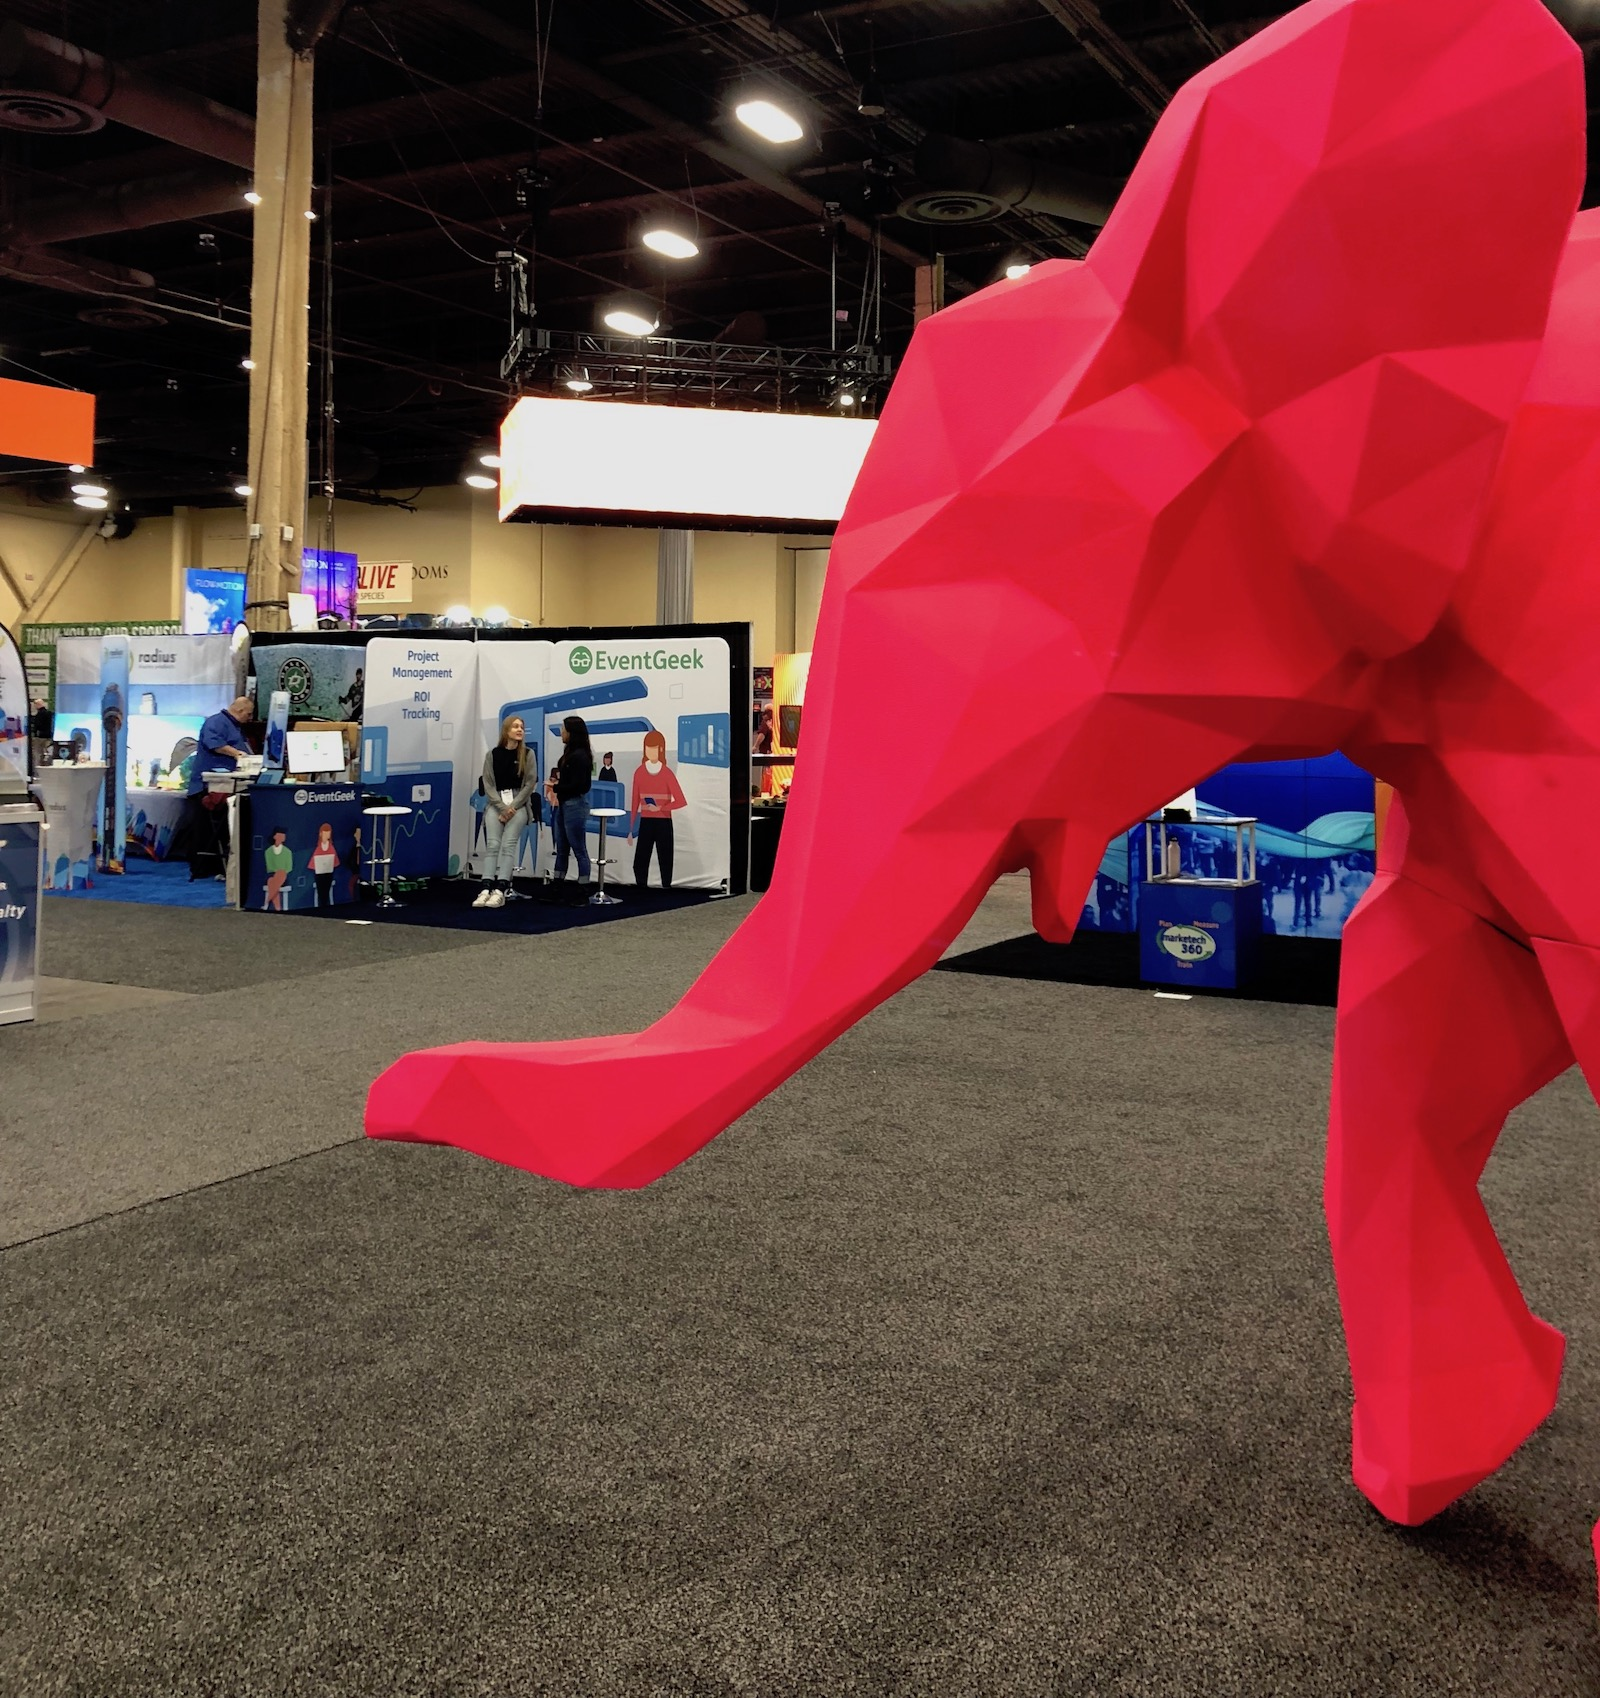 giant pink elephant and EventGeek booth at ExhibitorLive 2019